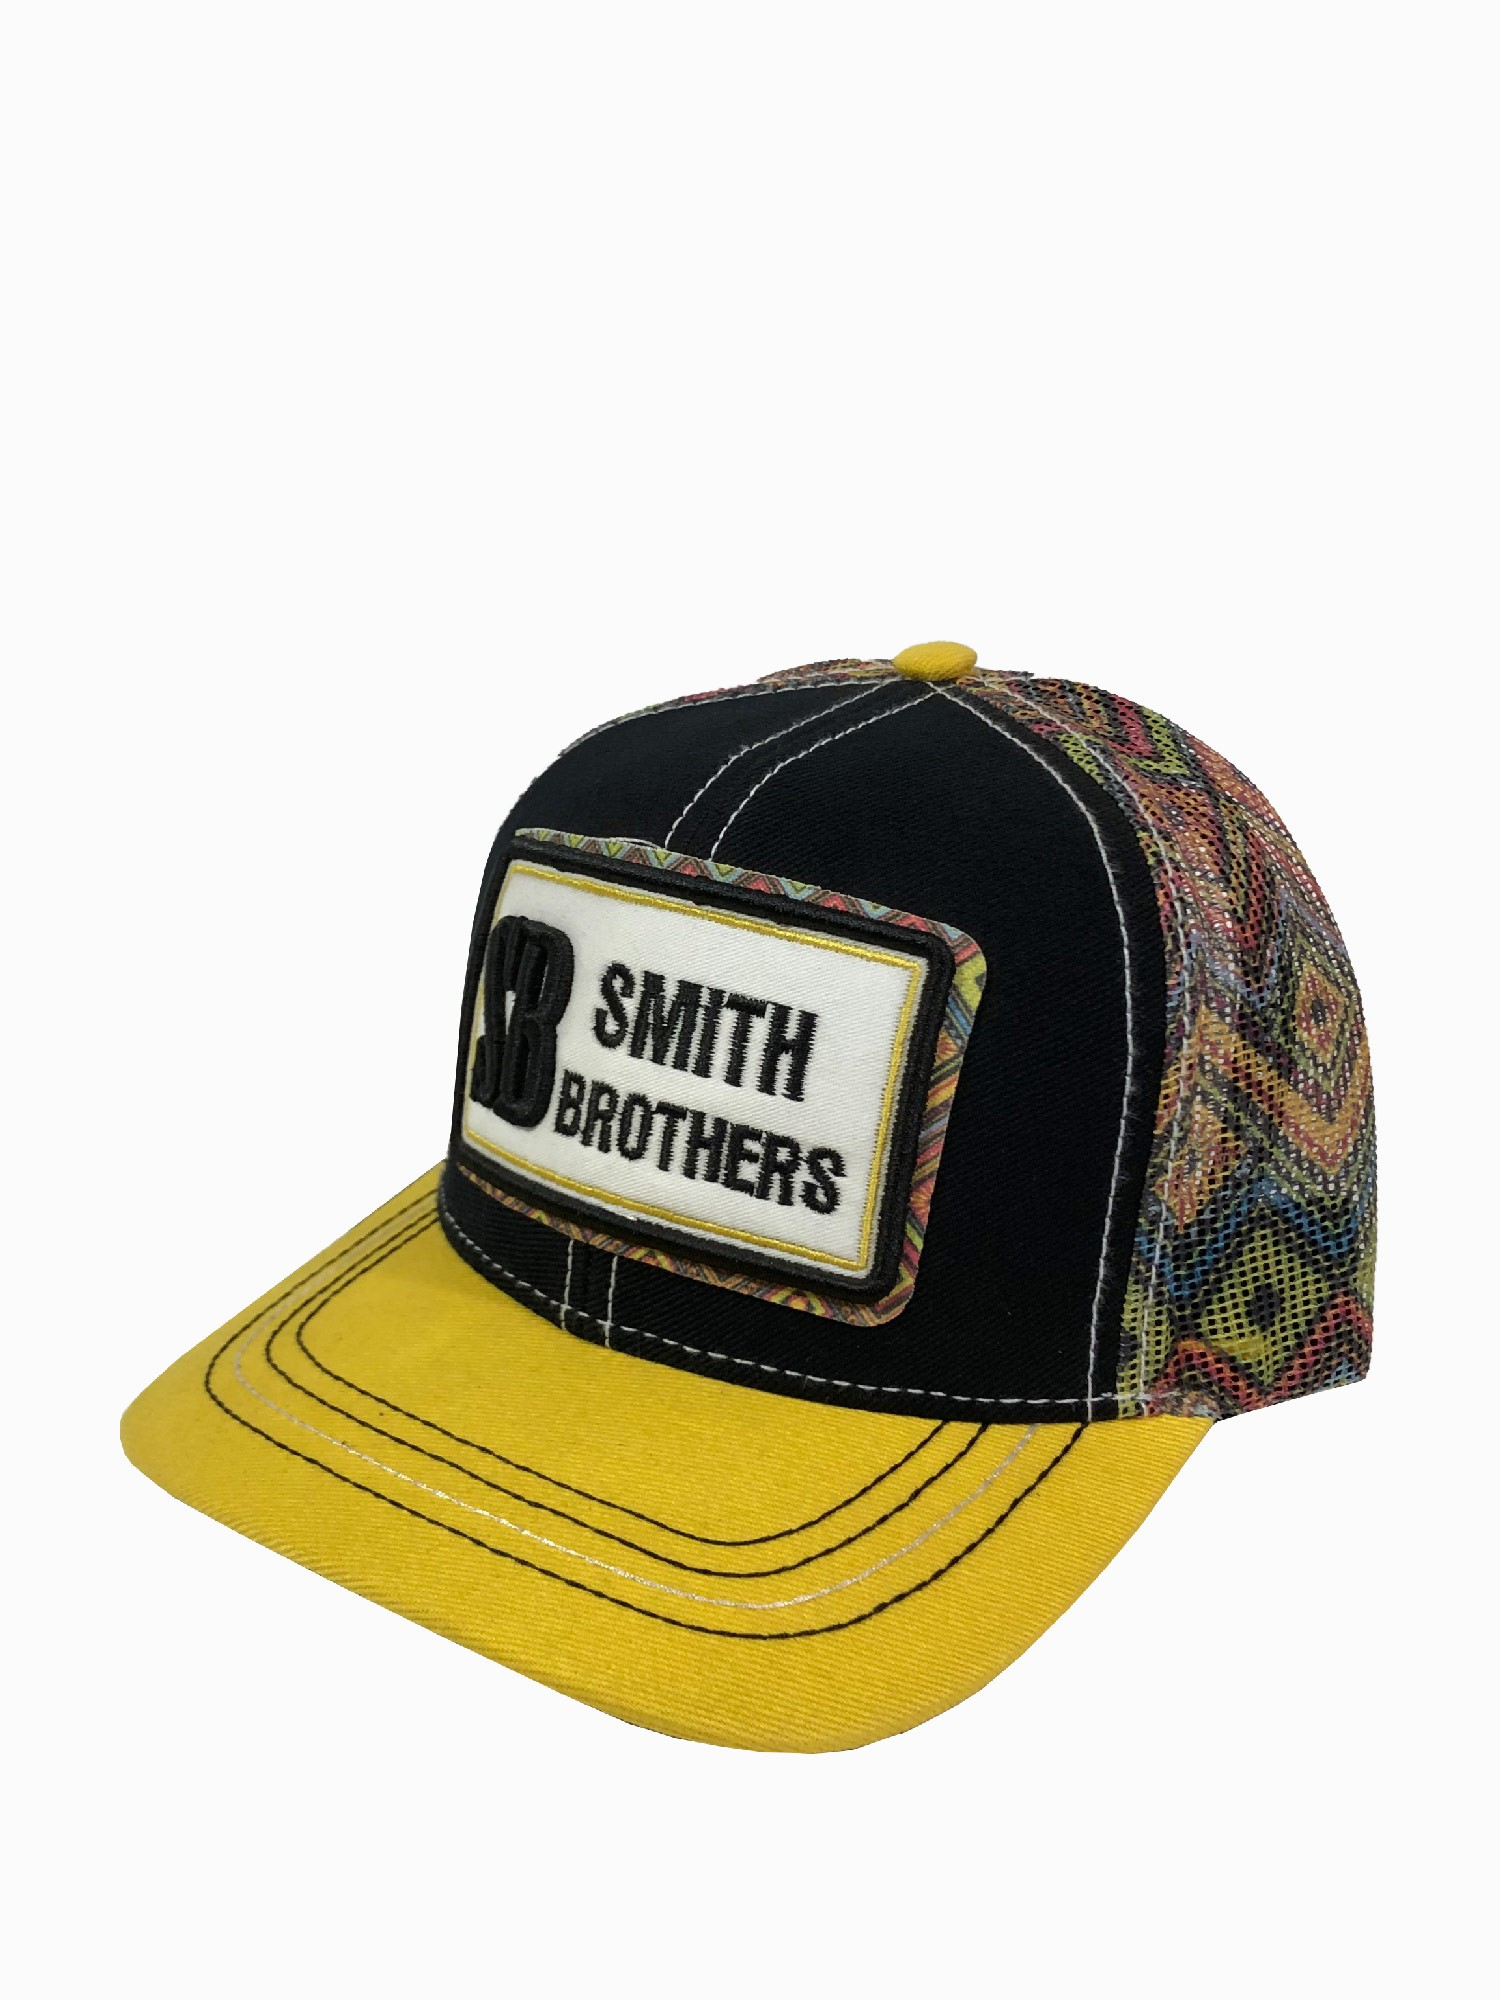 Boné Feminino Smith Brother's Estampado Amarelo